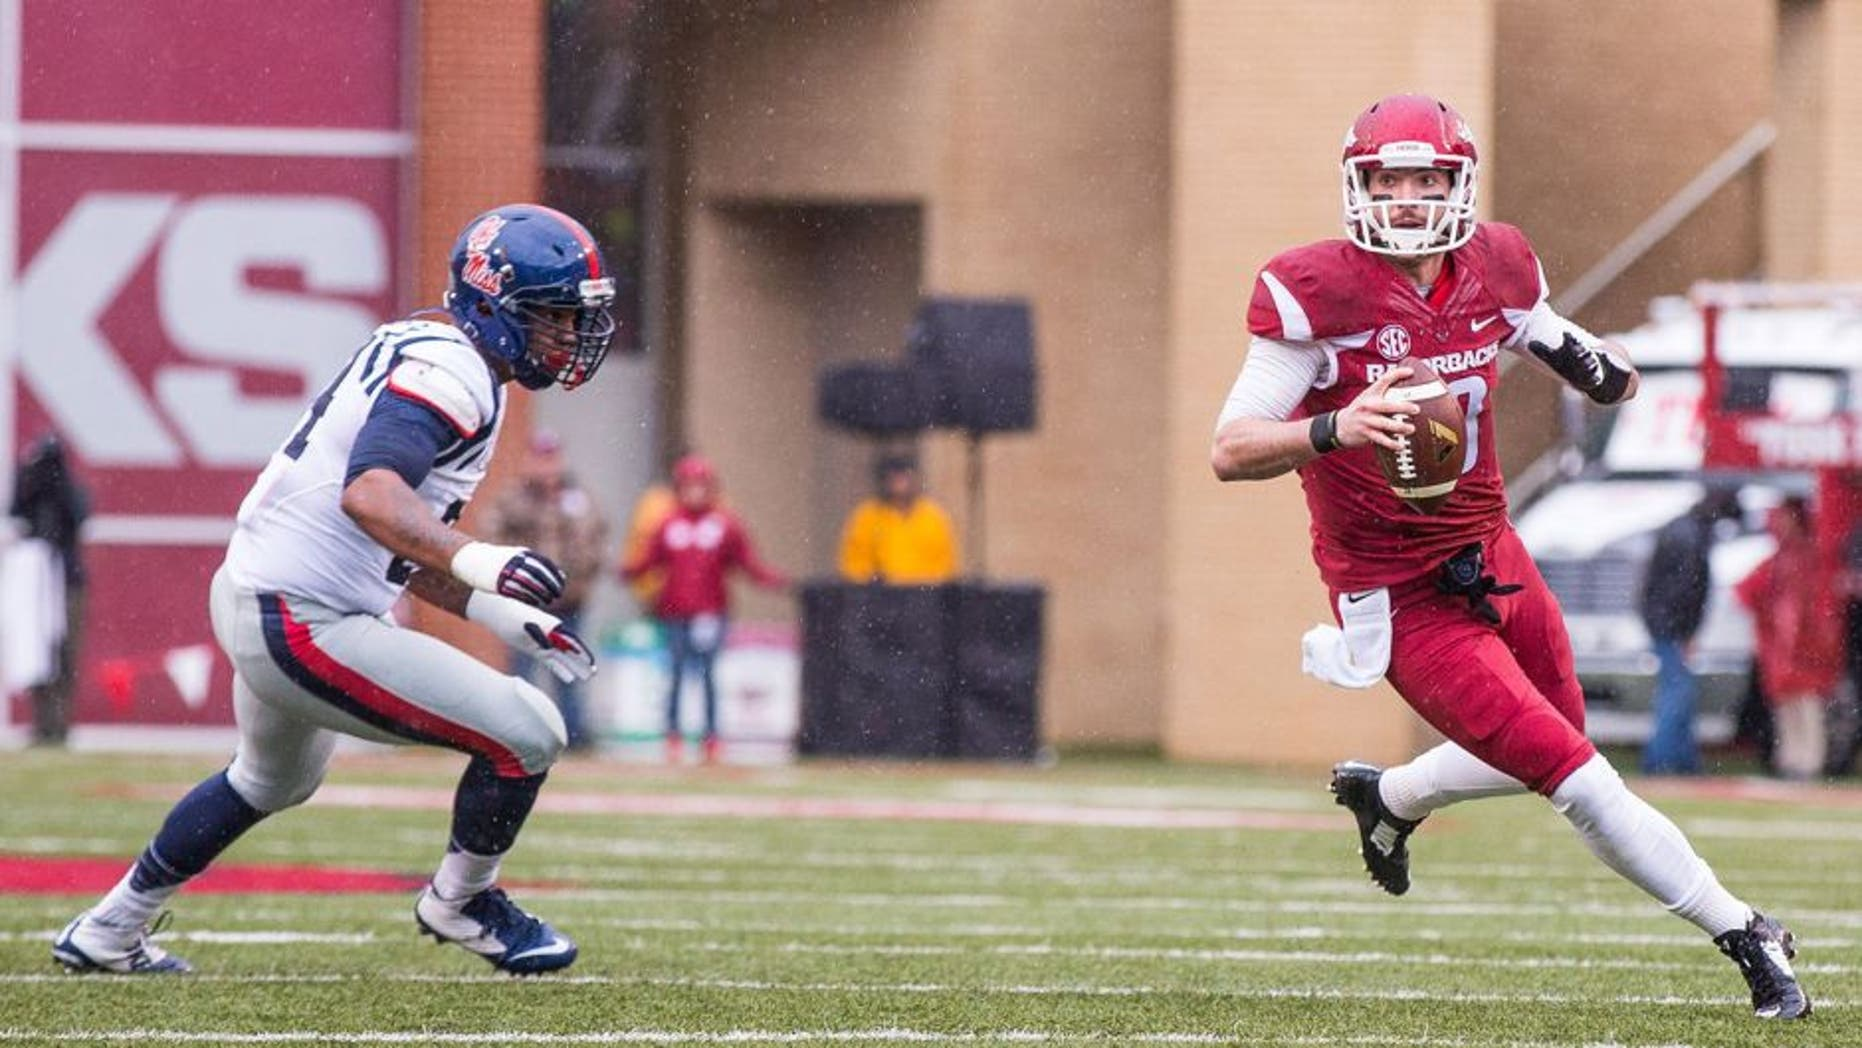 Nov 22, 2014; Fayetteville, AR, USA; Arkansas Razorbacks quarterback Brandon Allen (10) looks to pass while pursued by Ole Miss Rebels defensive tackle Issac Gross (94) during a game at Donald W. Reynolds Razorback Stadium. Arkansas defeated Ole Miss 30-0. Mandatory Credit: Beth Hall-USA TODAY Sports